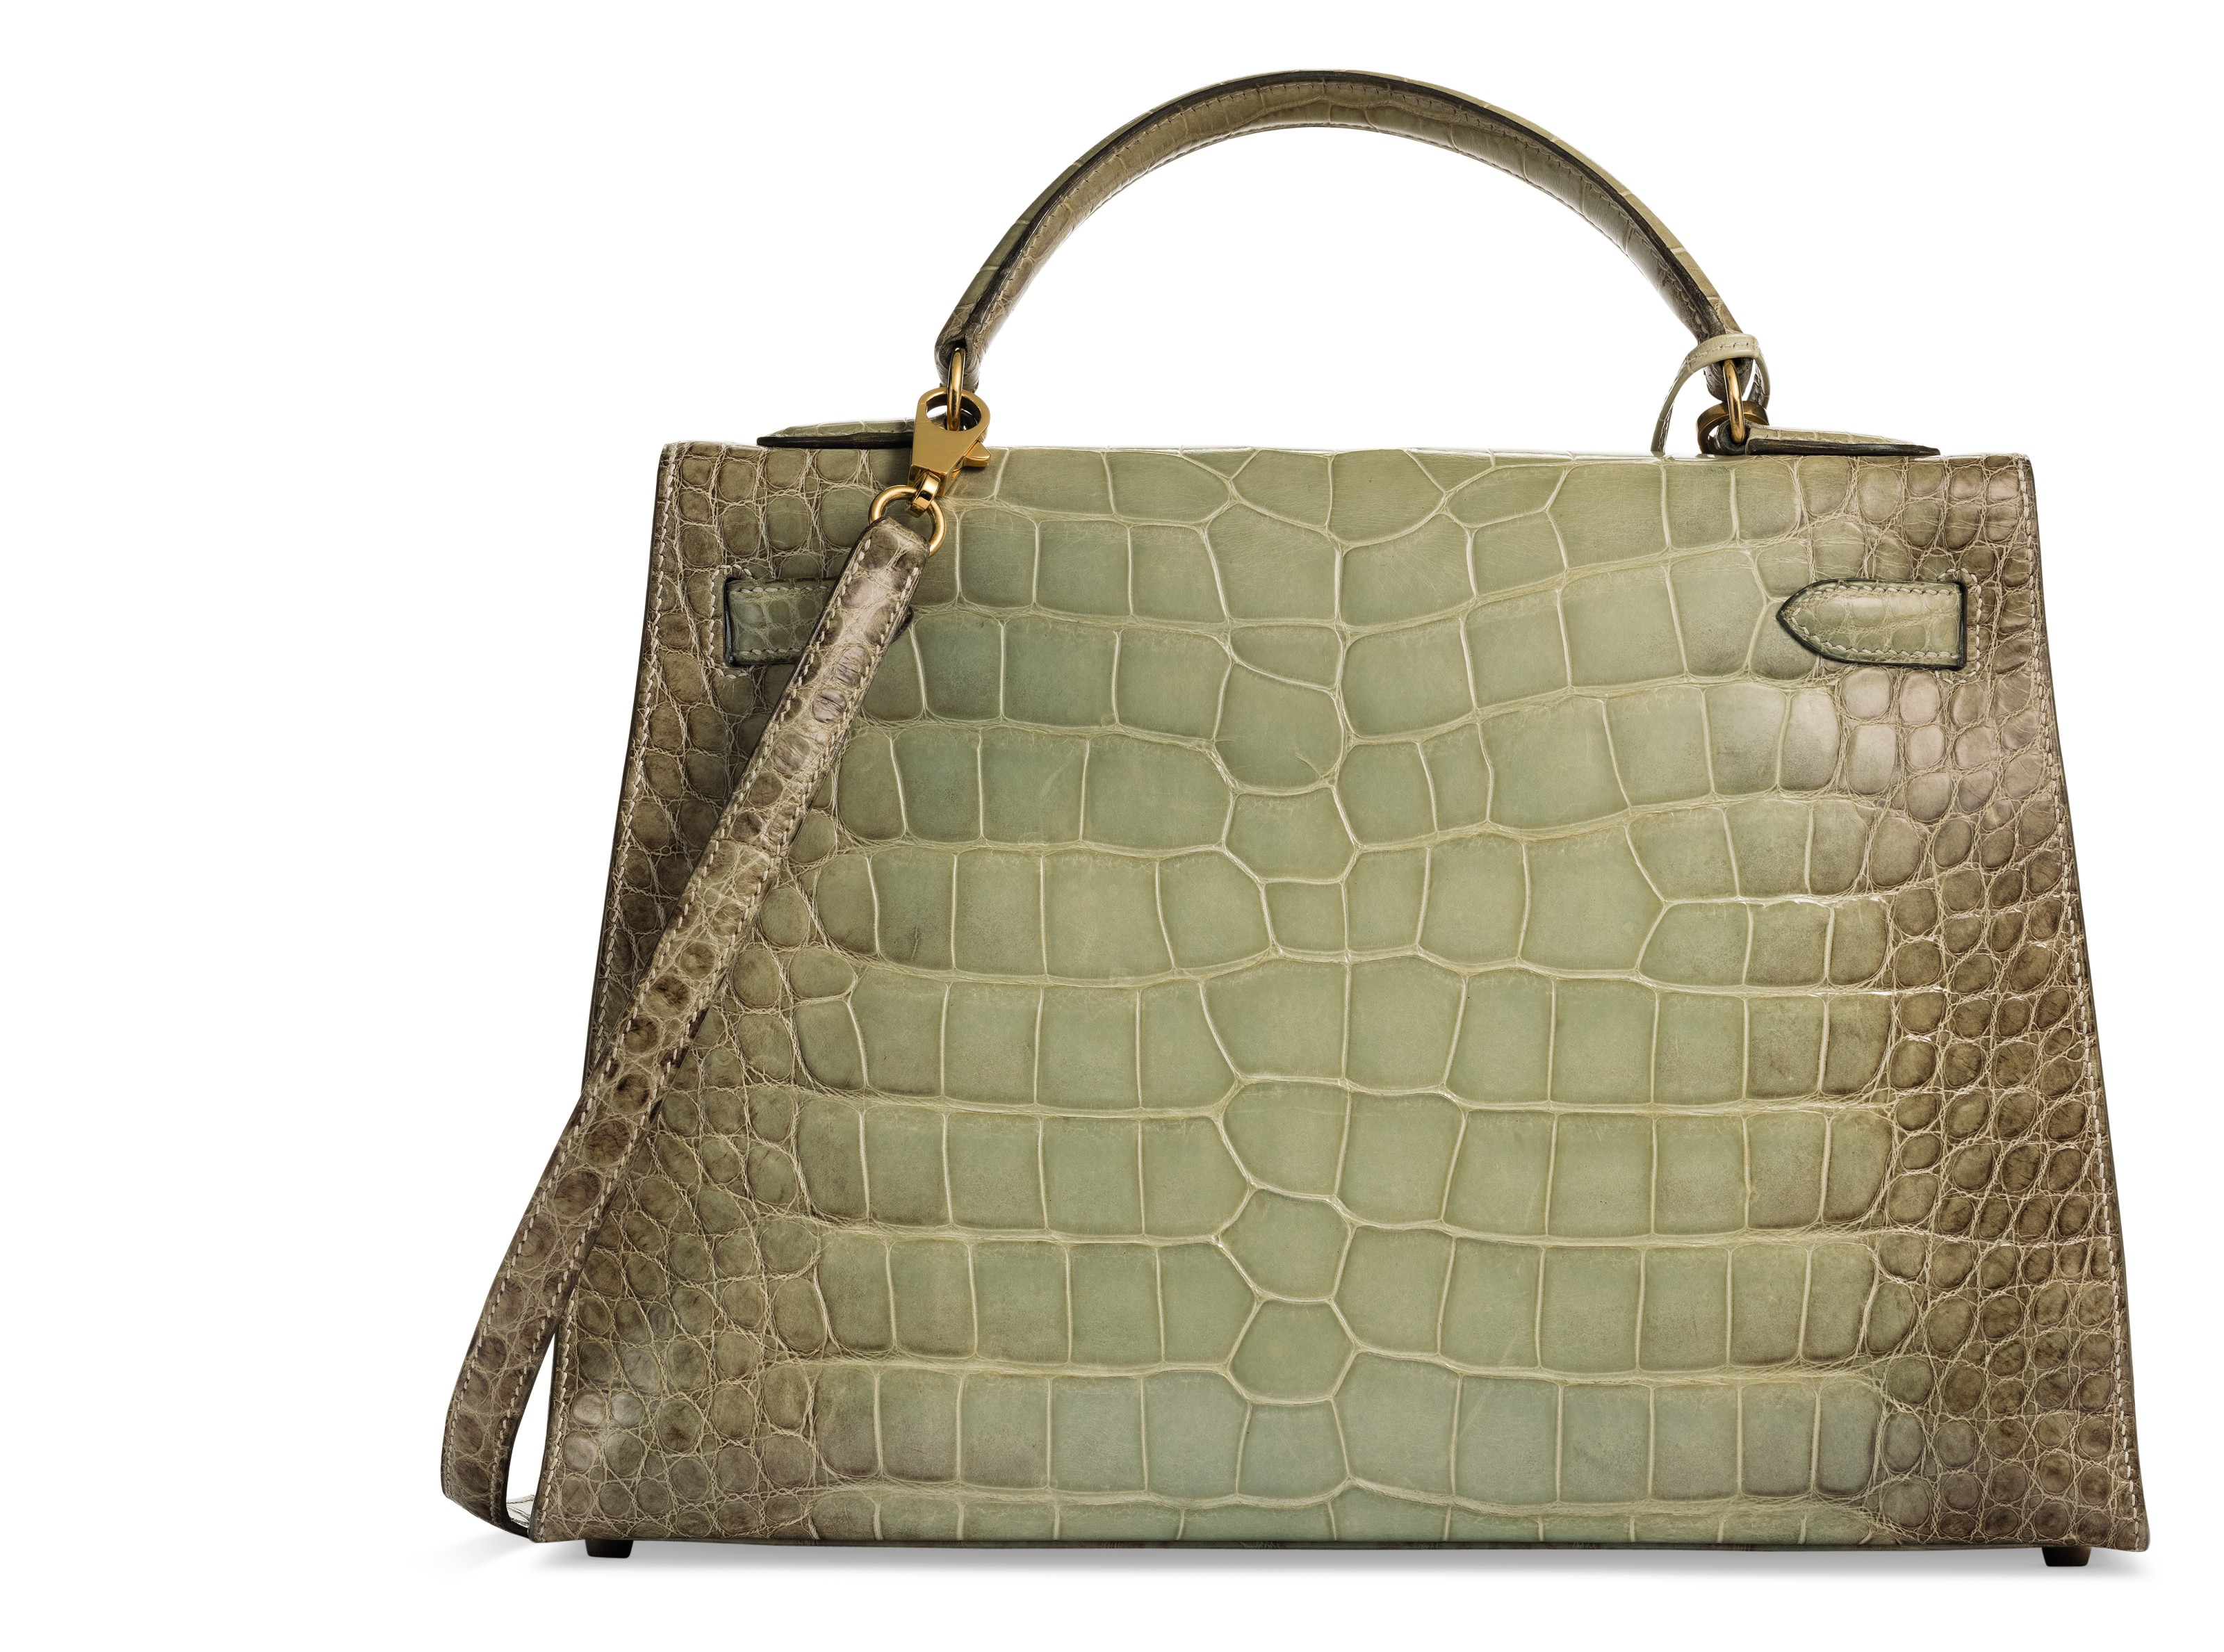 A RARE, SHINY NATURA VERT CÉLADON ALLIGATOR SELLIER KELLY 32 WITH GOLD HARDWARE